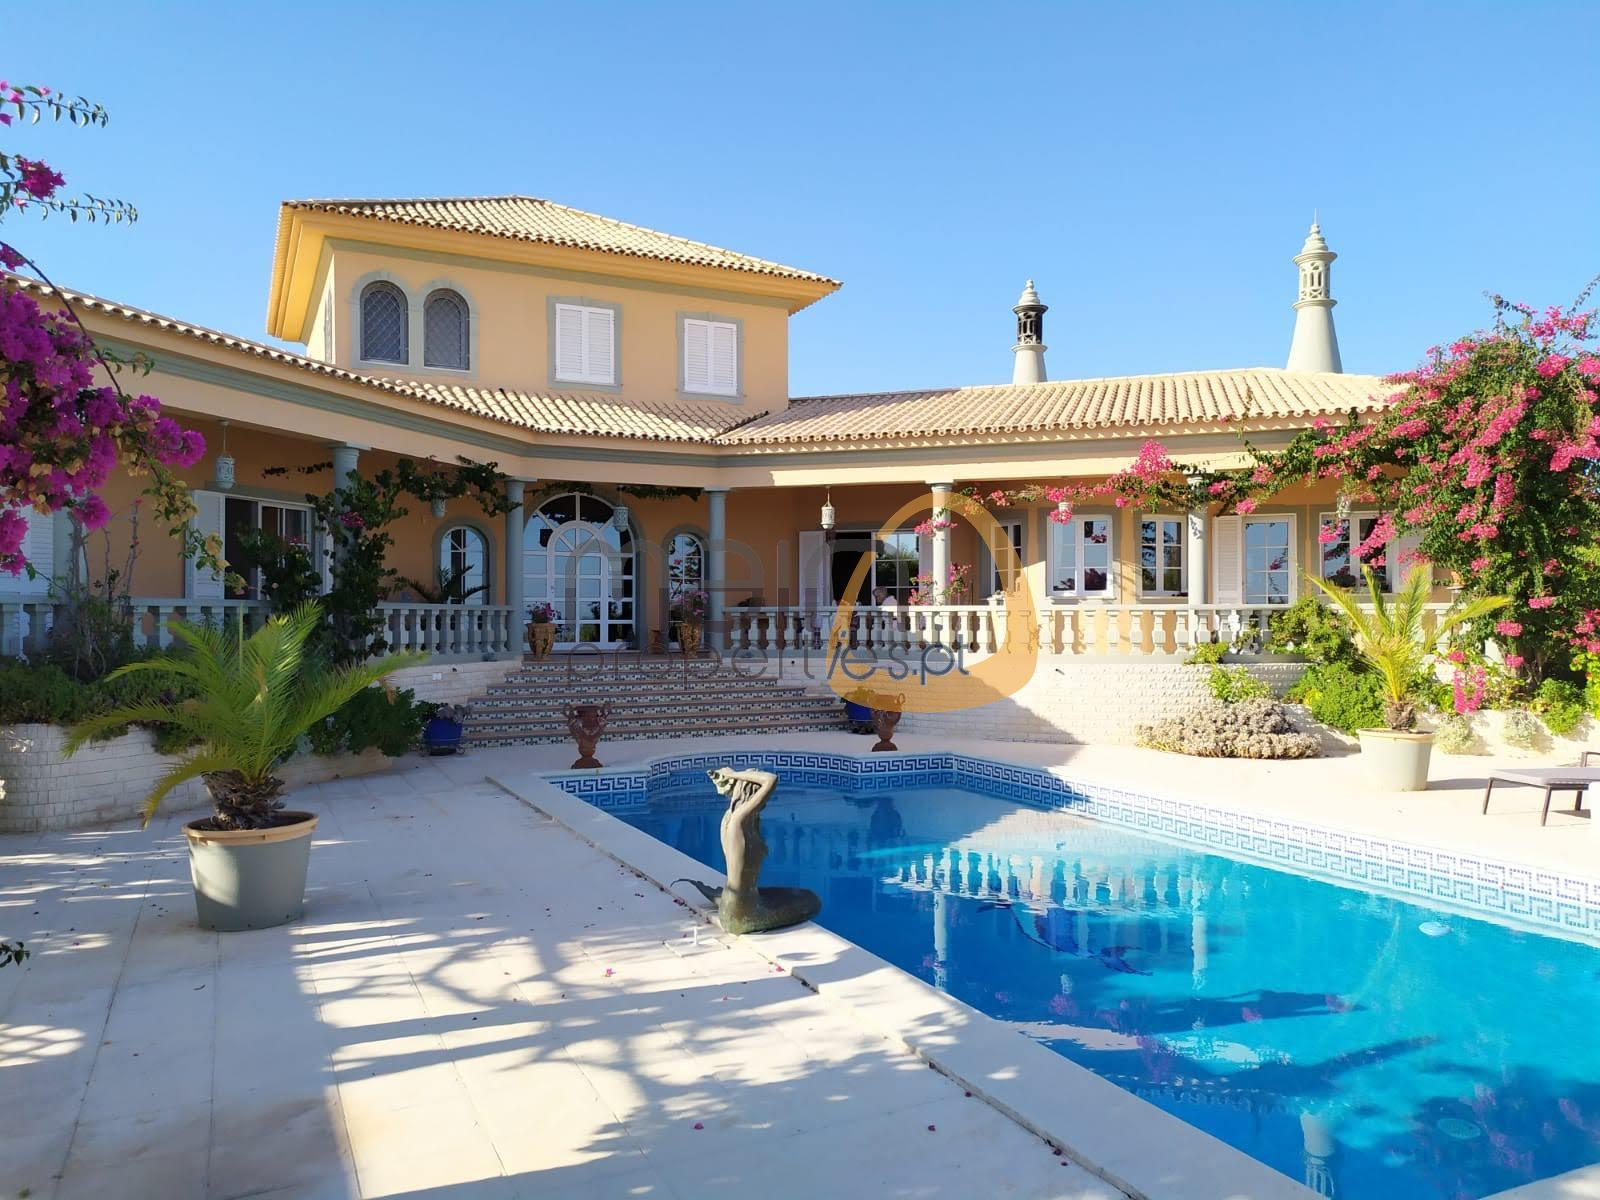 Typical 4 bedroom Algarve style Villa, with guest house, in Boliqueime.